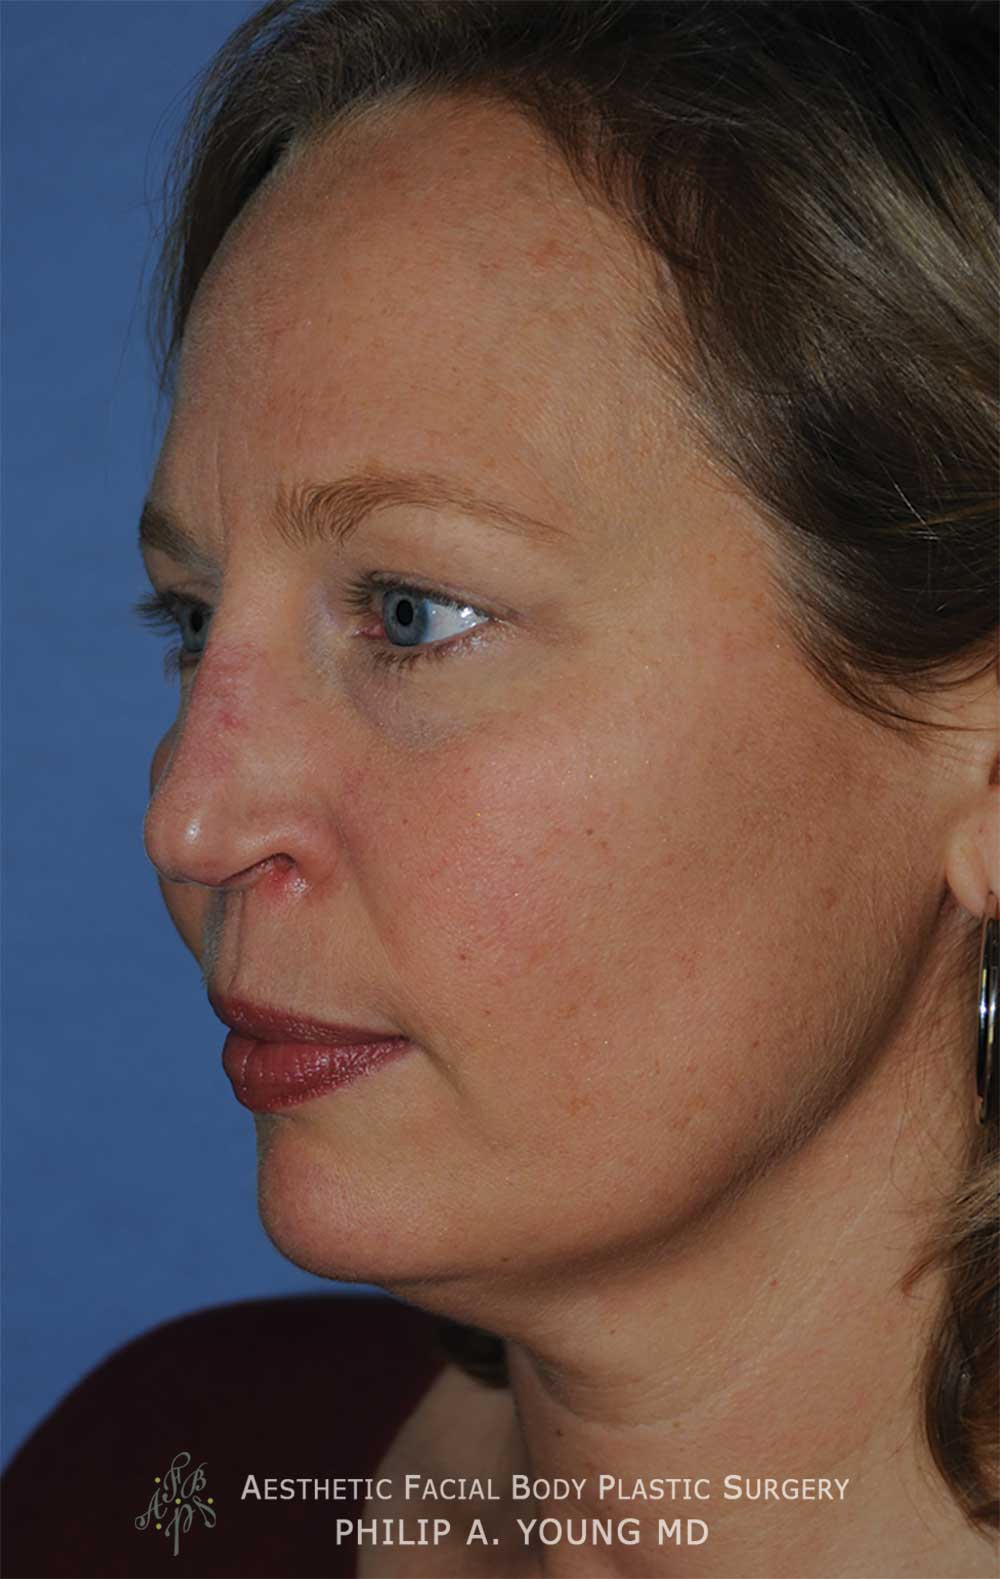 Before Revision Rhinoplasty for Crooked Tip, Crooked Nasal Bridge, Nose Bridge Dorsal Irregularities, Hook & Droopy Nasal Tip, Retracted Alae Nostrils Left Oblique View.